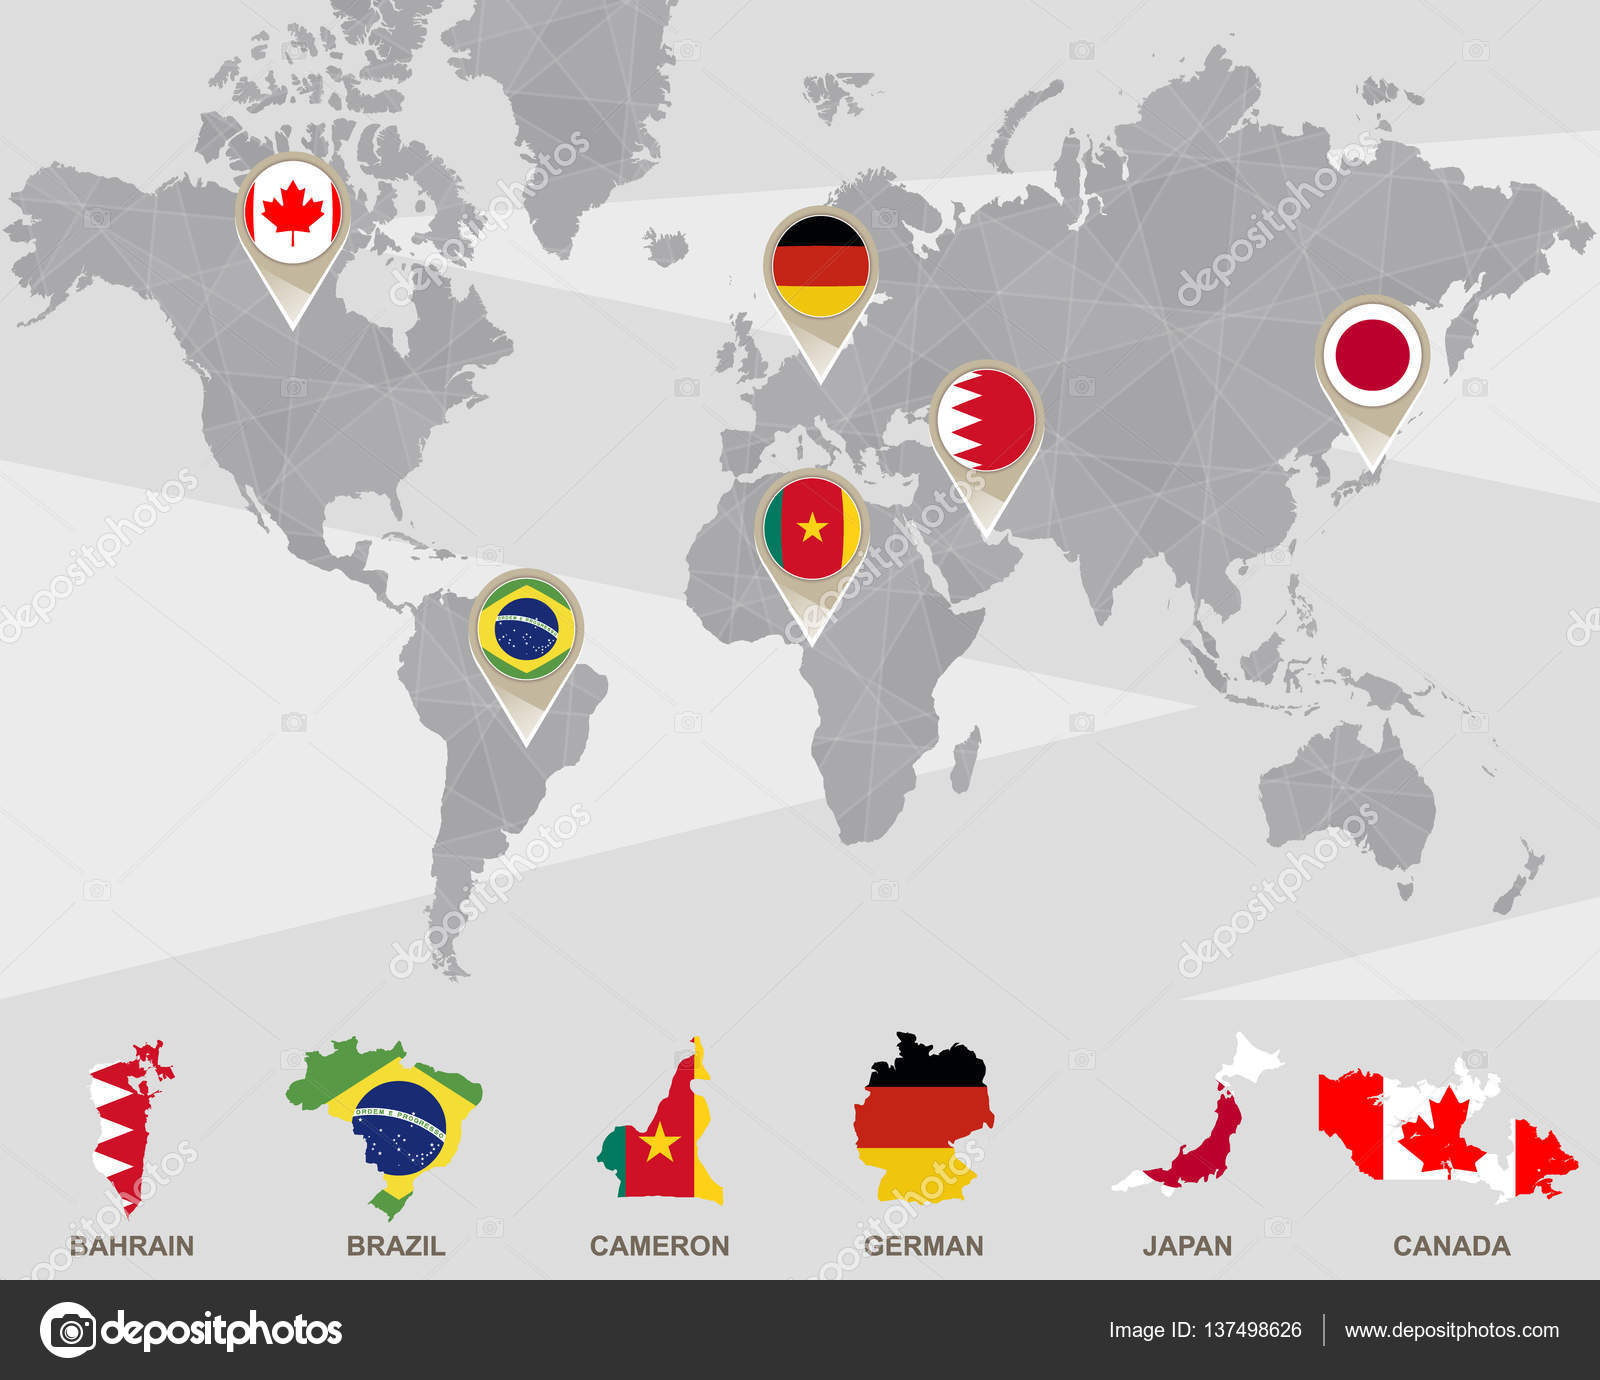 World map with bahrain brazil cameron german japan canada world map with bahrain brazil cameron german japan canada pointers vector illustration vector by boldg gumiabroncs Choice Image